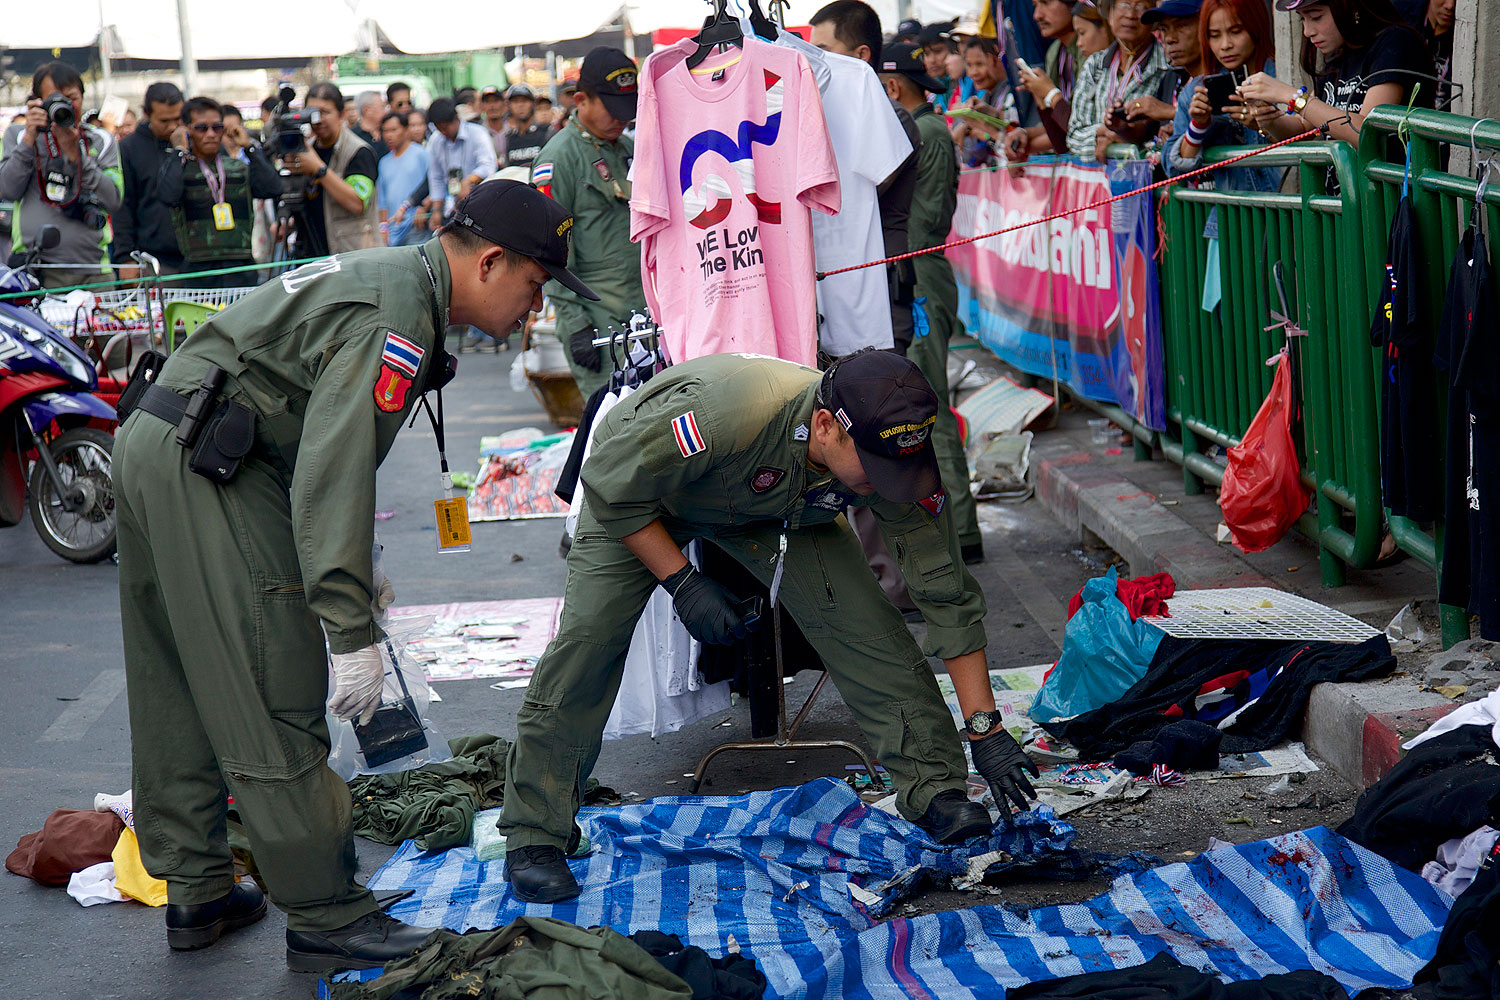 Thai police officers examine the scene of an explosion at an antigovernment protest site in Bangkok on Jan. 19, 2014